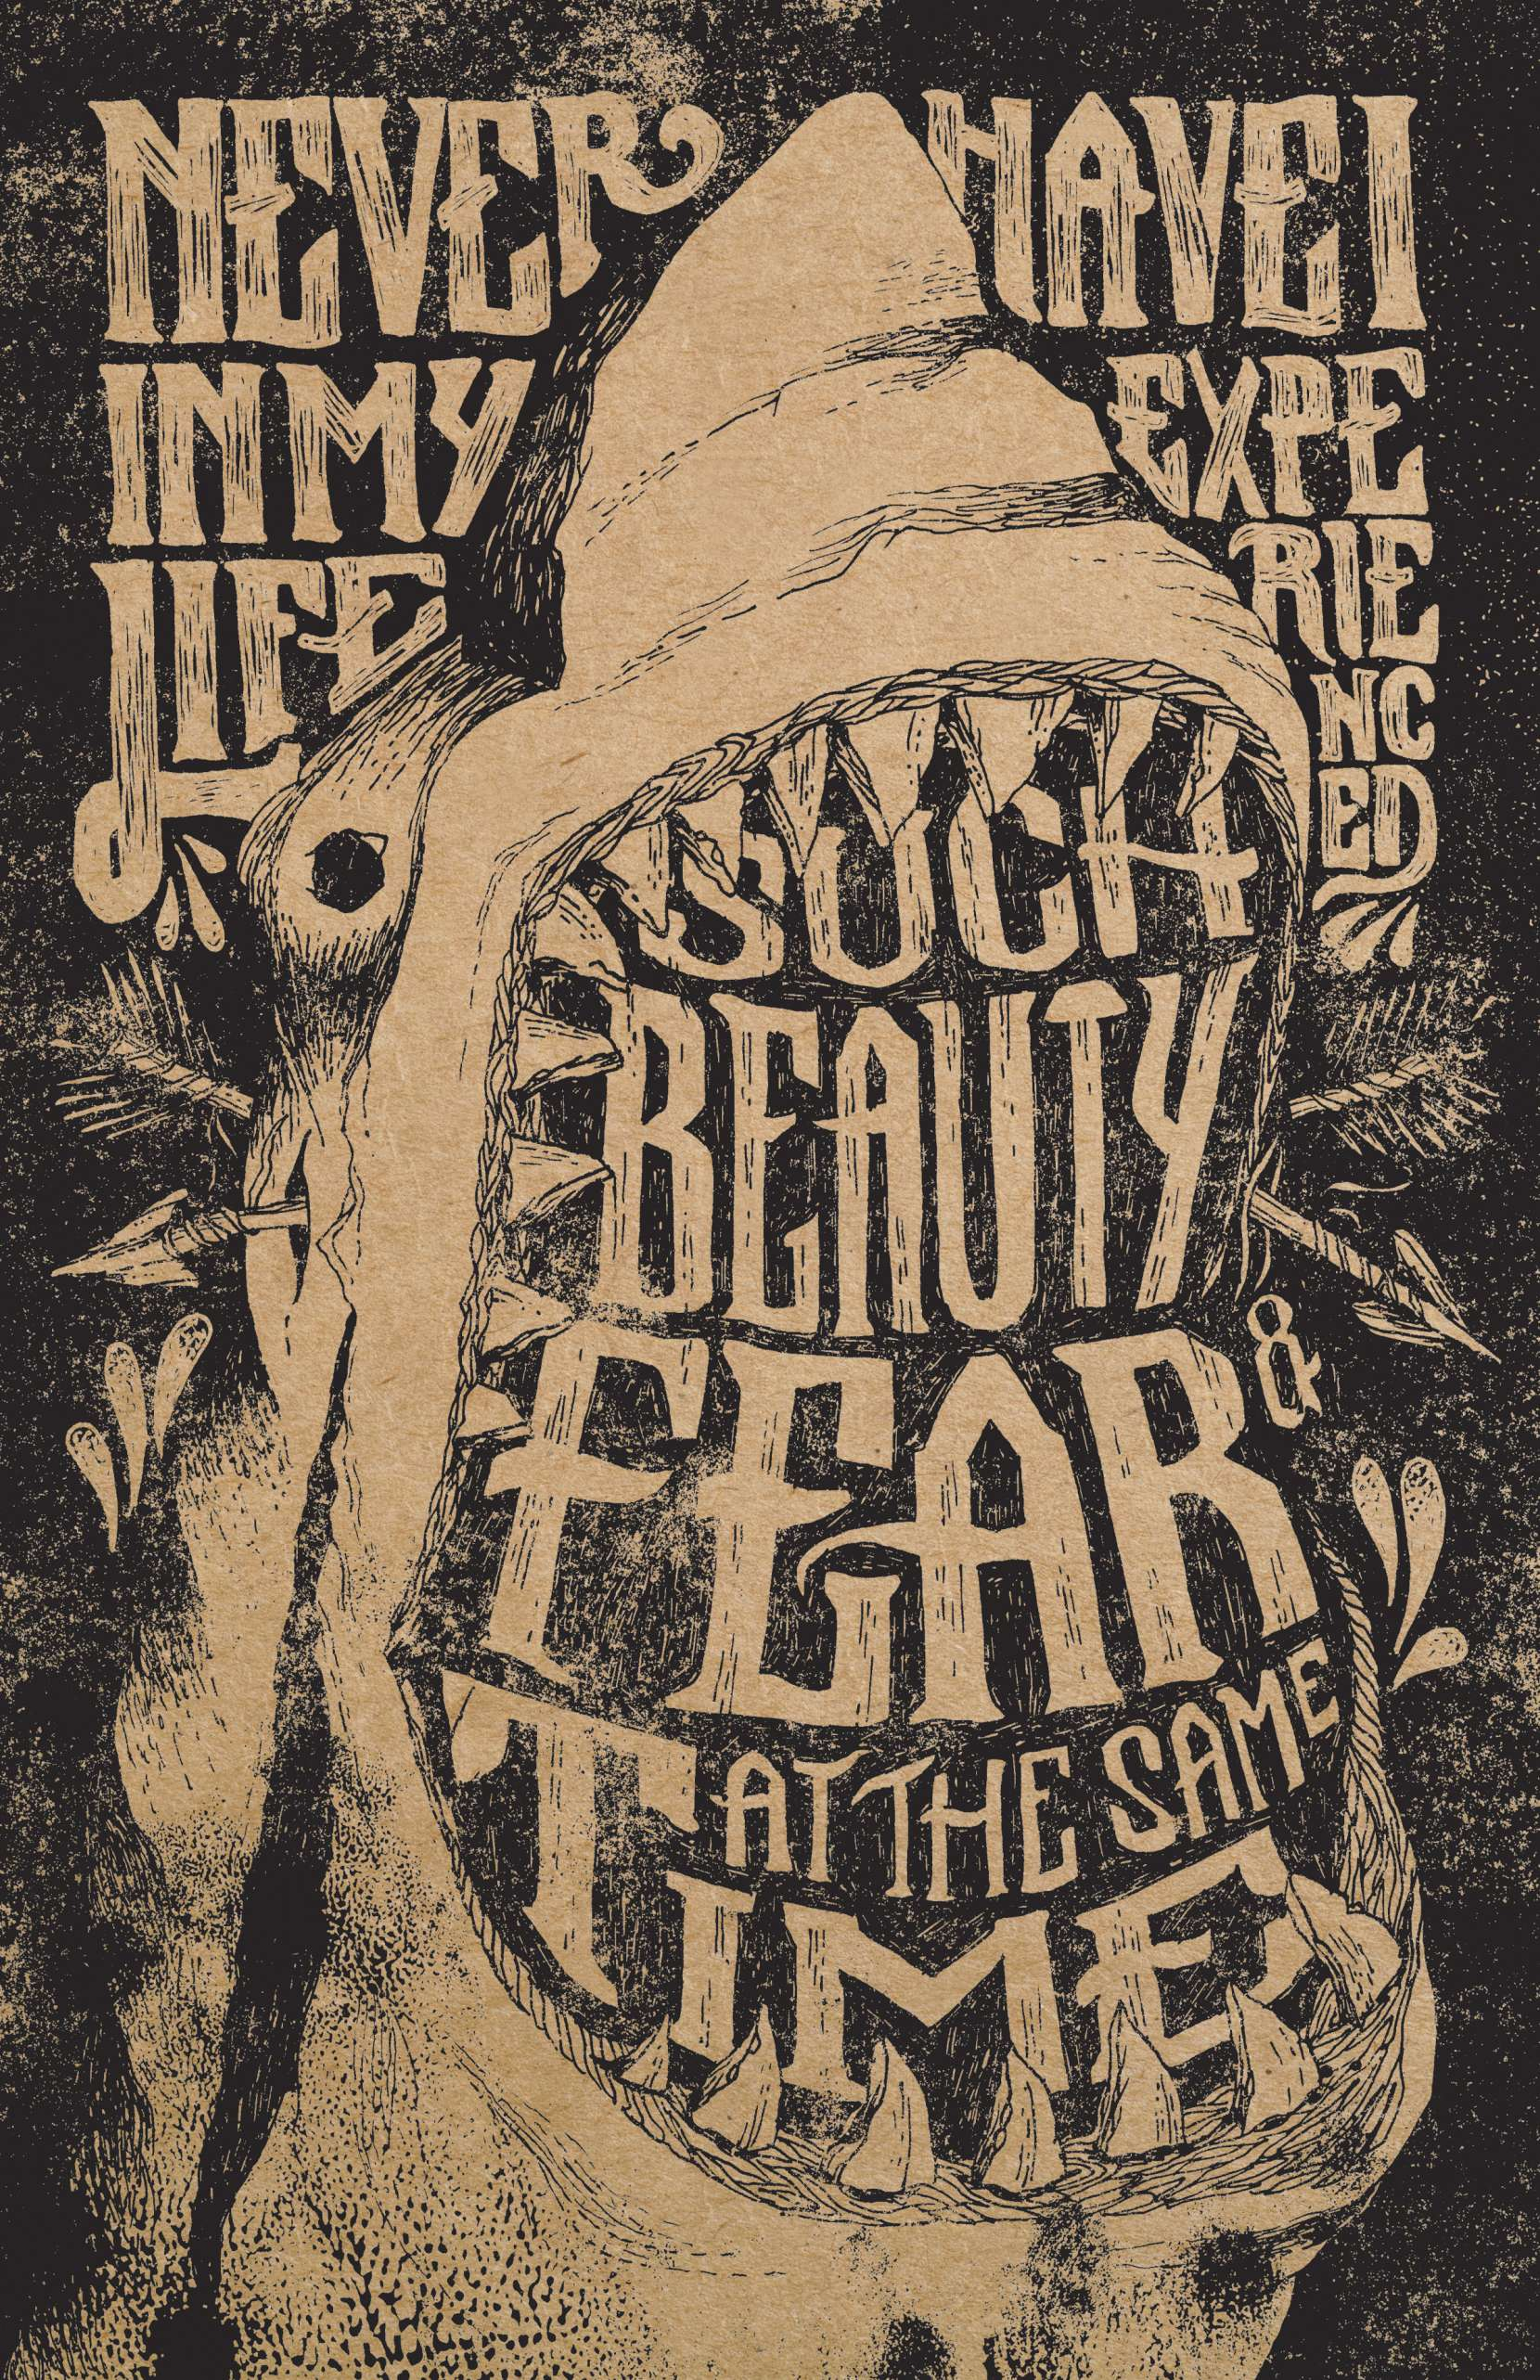 BEAUTY & FEAR